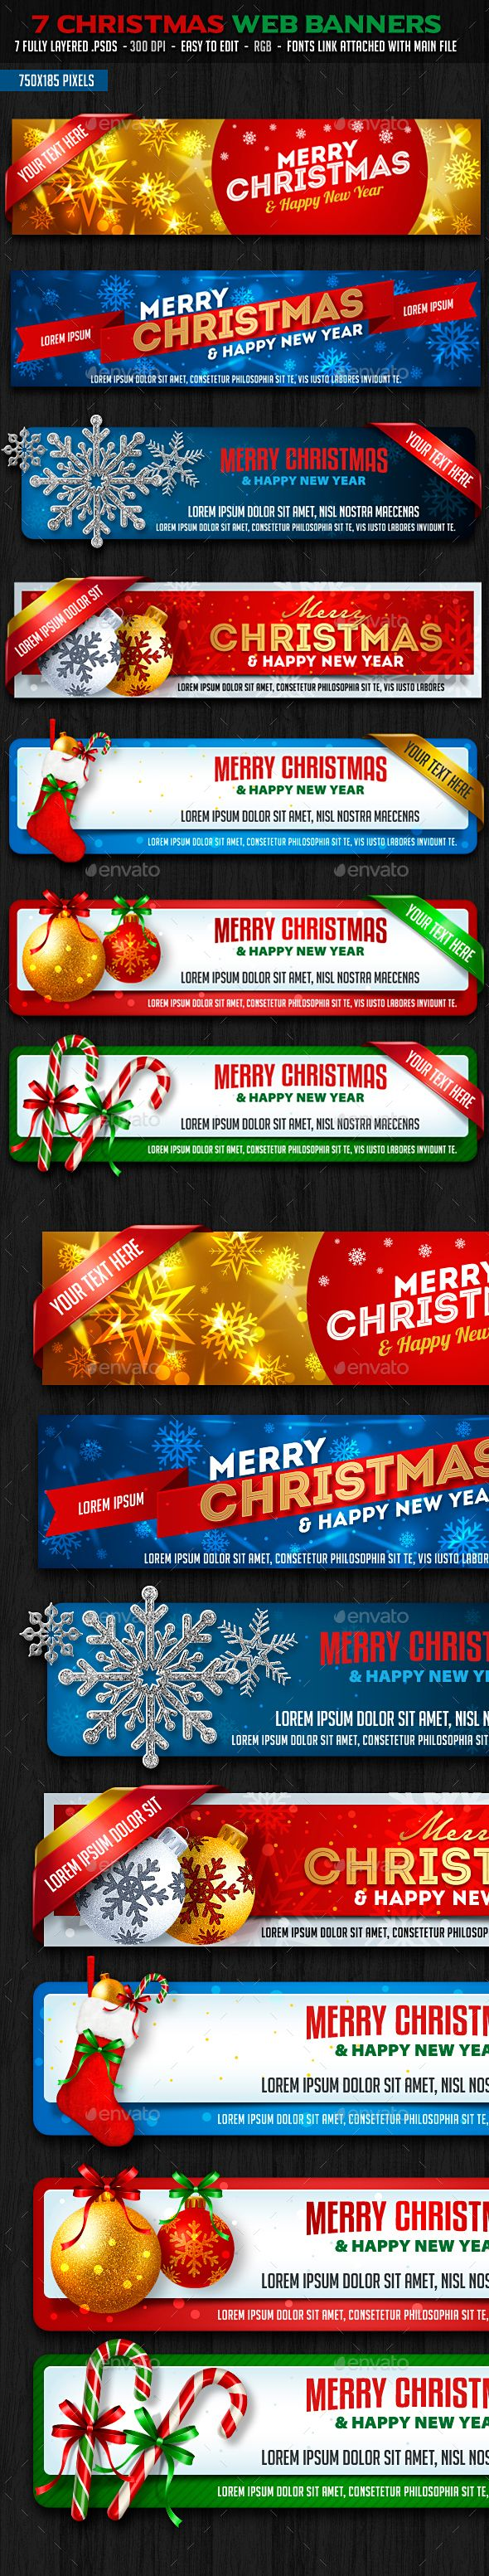 Christmas Web Banners Template PSD #design #ads Download: http://graphicriver.net/item/christmas-web-banners/13513588?ref=ksioks